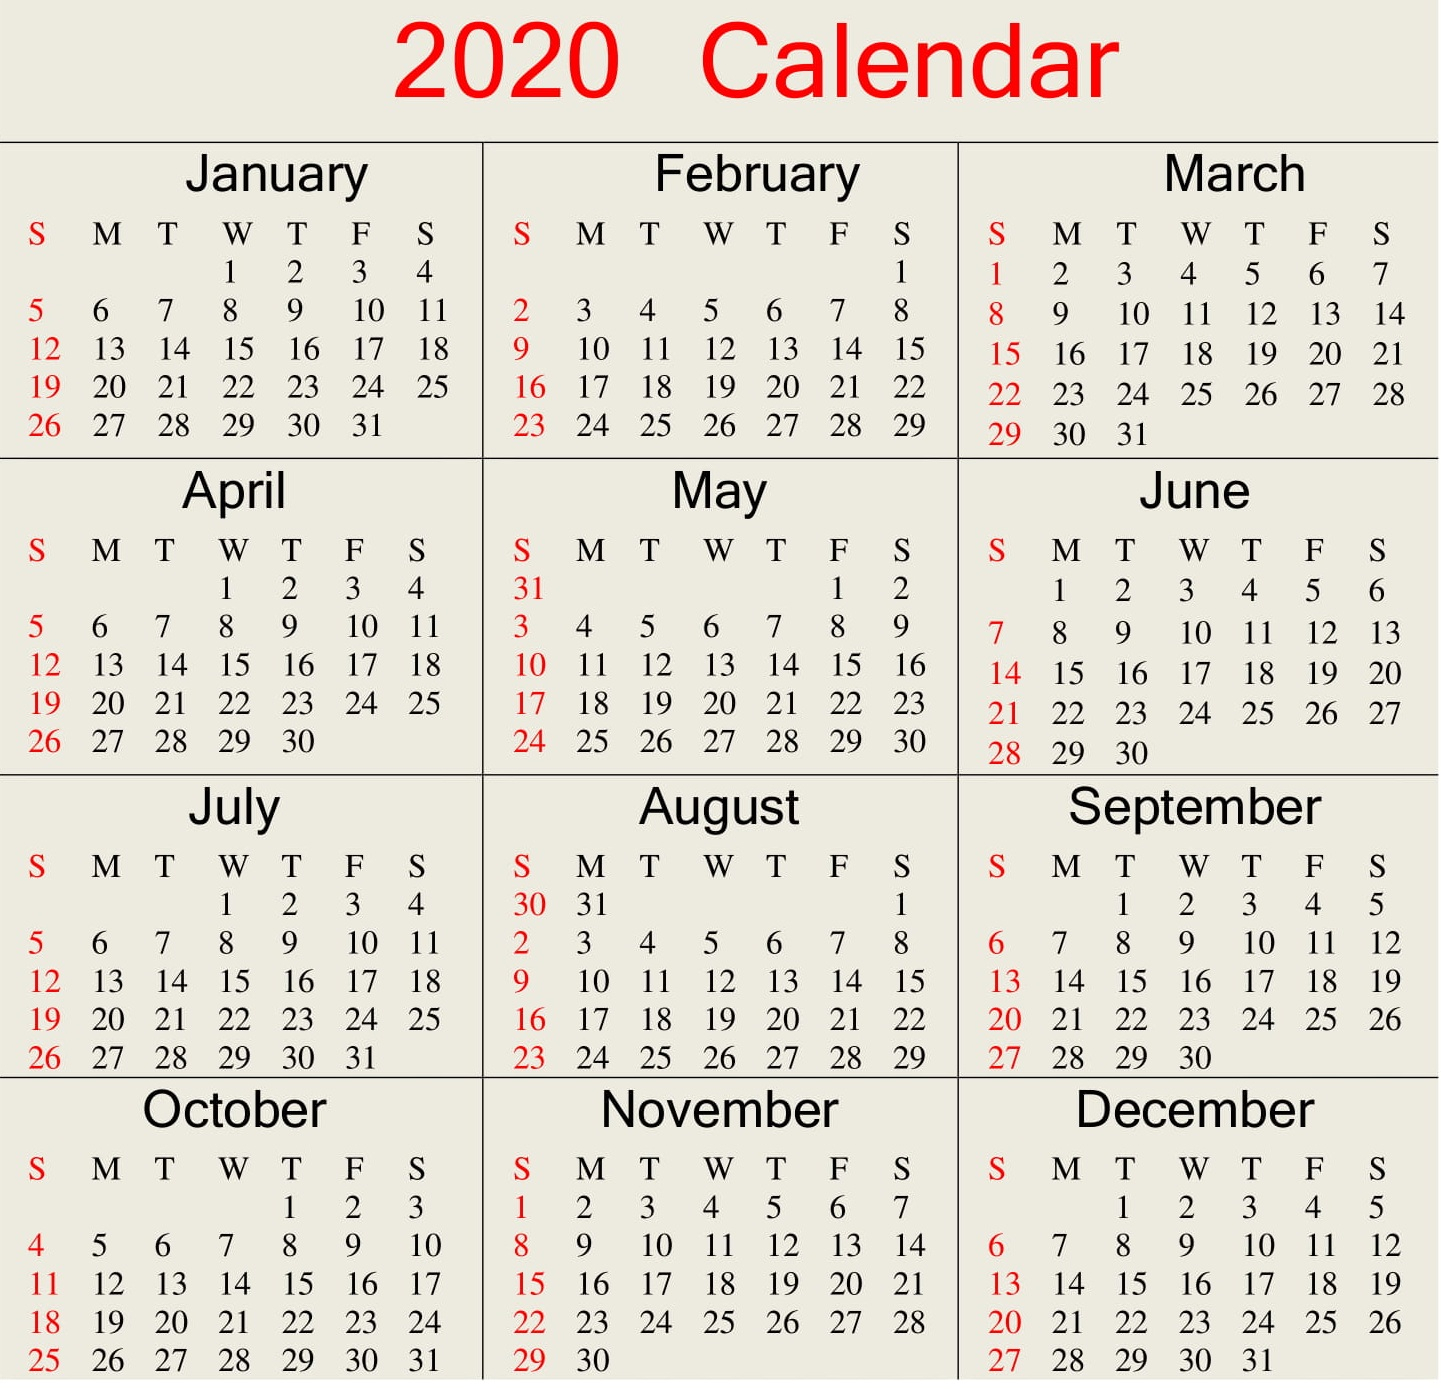 Printable 2020 Calendar Word Document  Latest Printable with regard to Julian Date Calendar For Year 2020